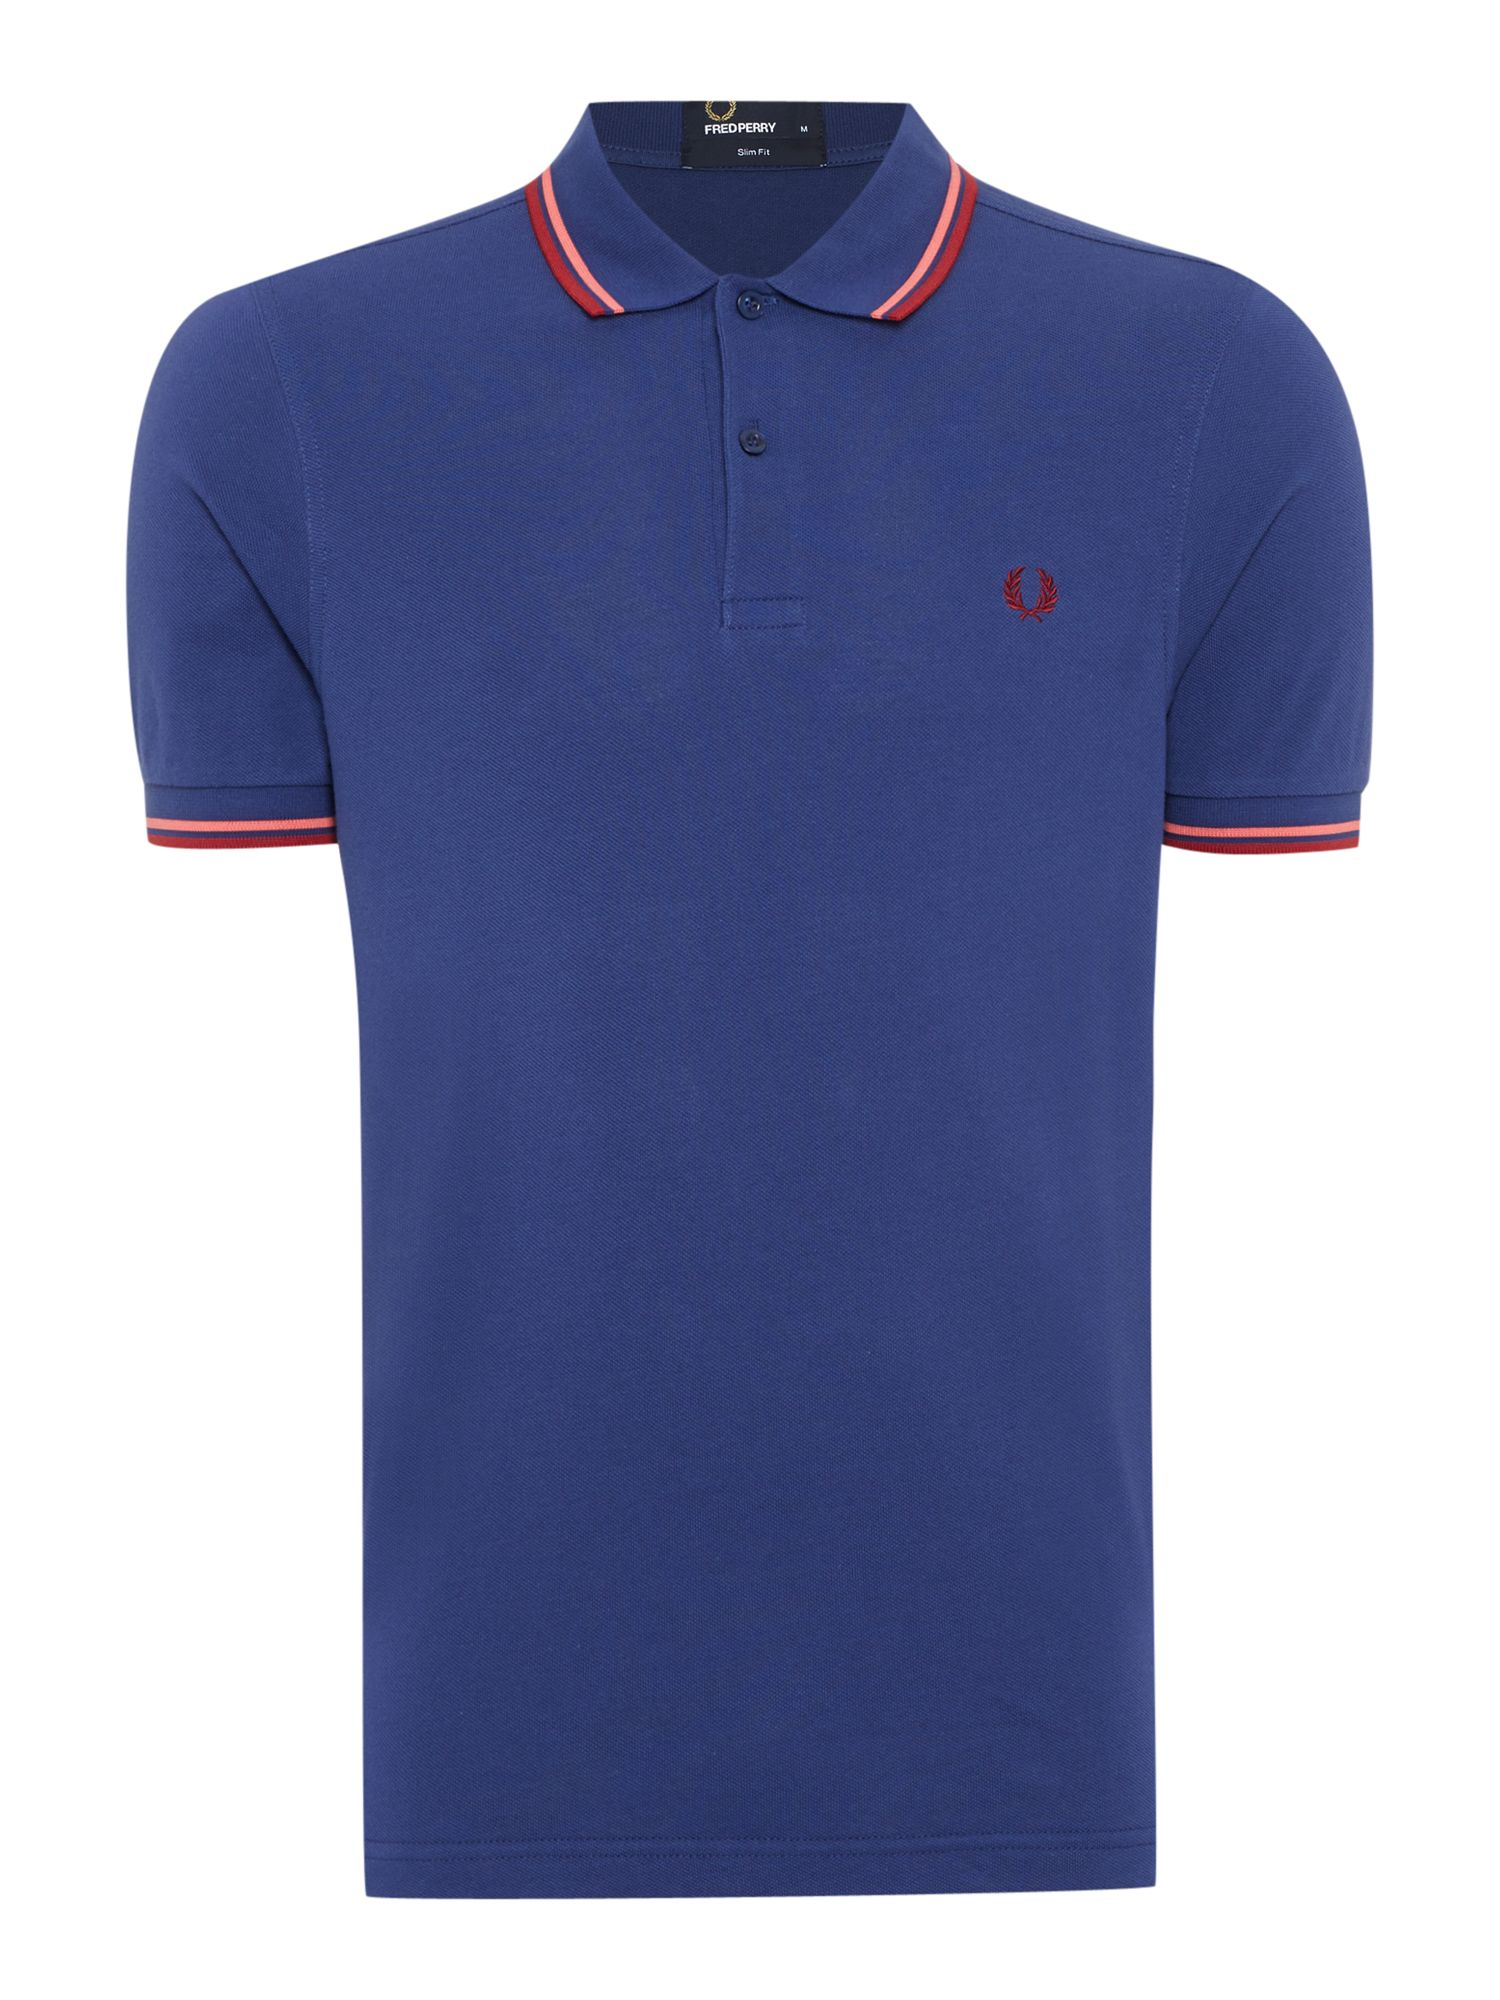 Mens Fred Perry Plain Slim Fit Polo Shirt Dark Blue